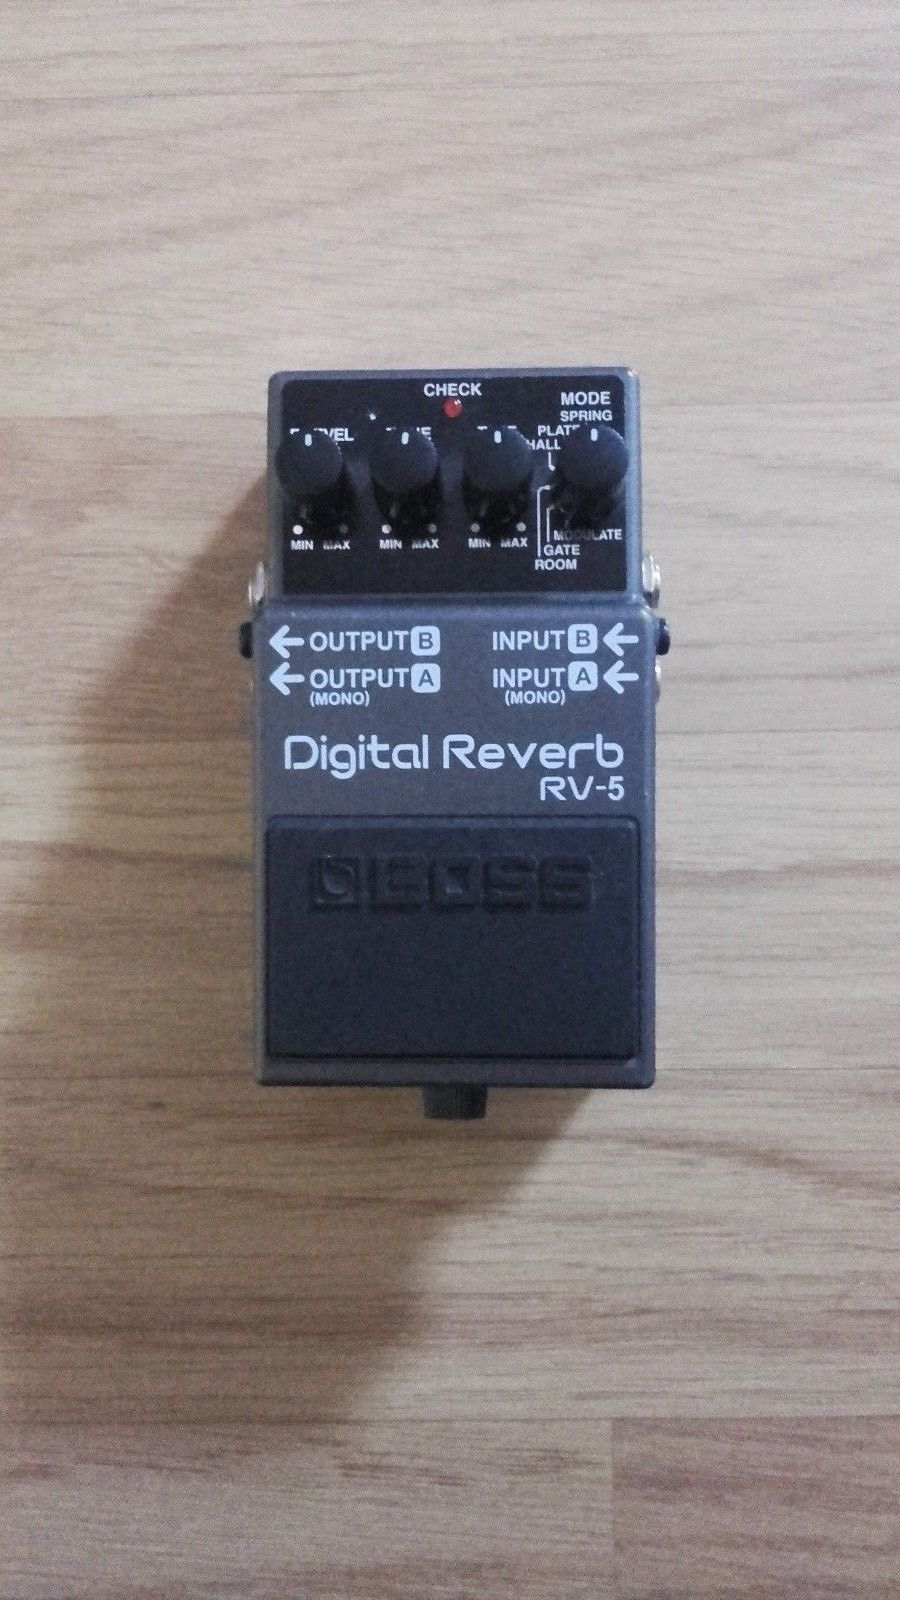 BOSS RV-5 Digital Reverb Pedal Review by Sweetwater Sound